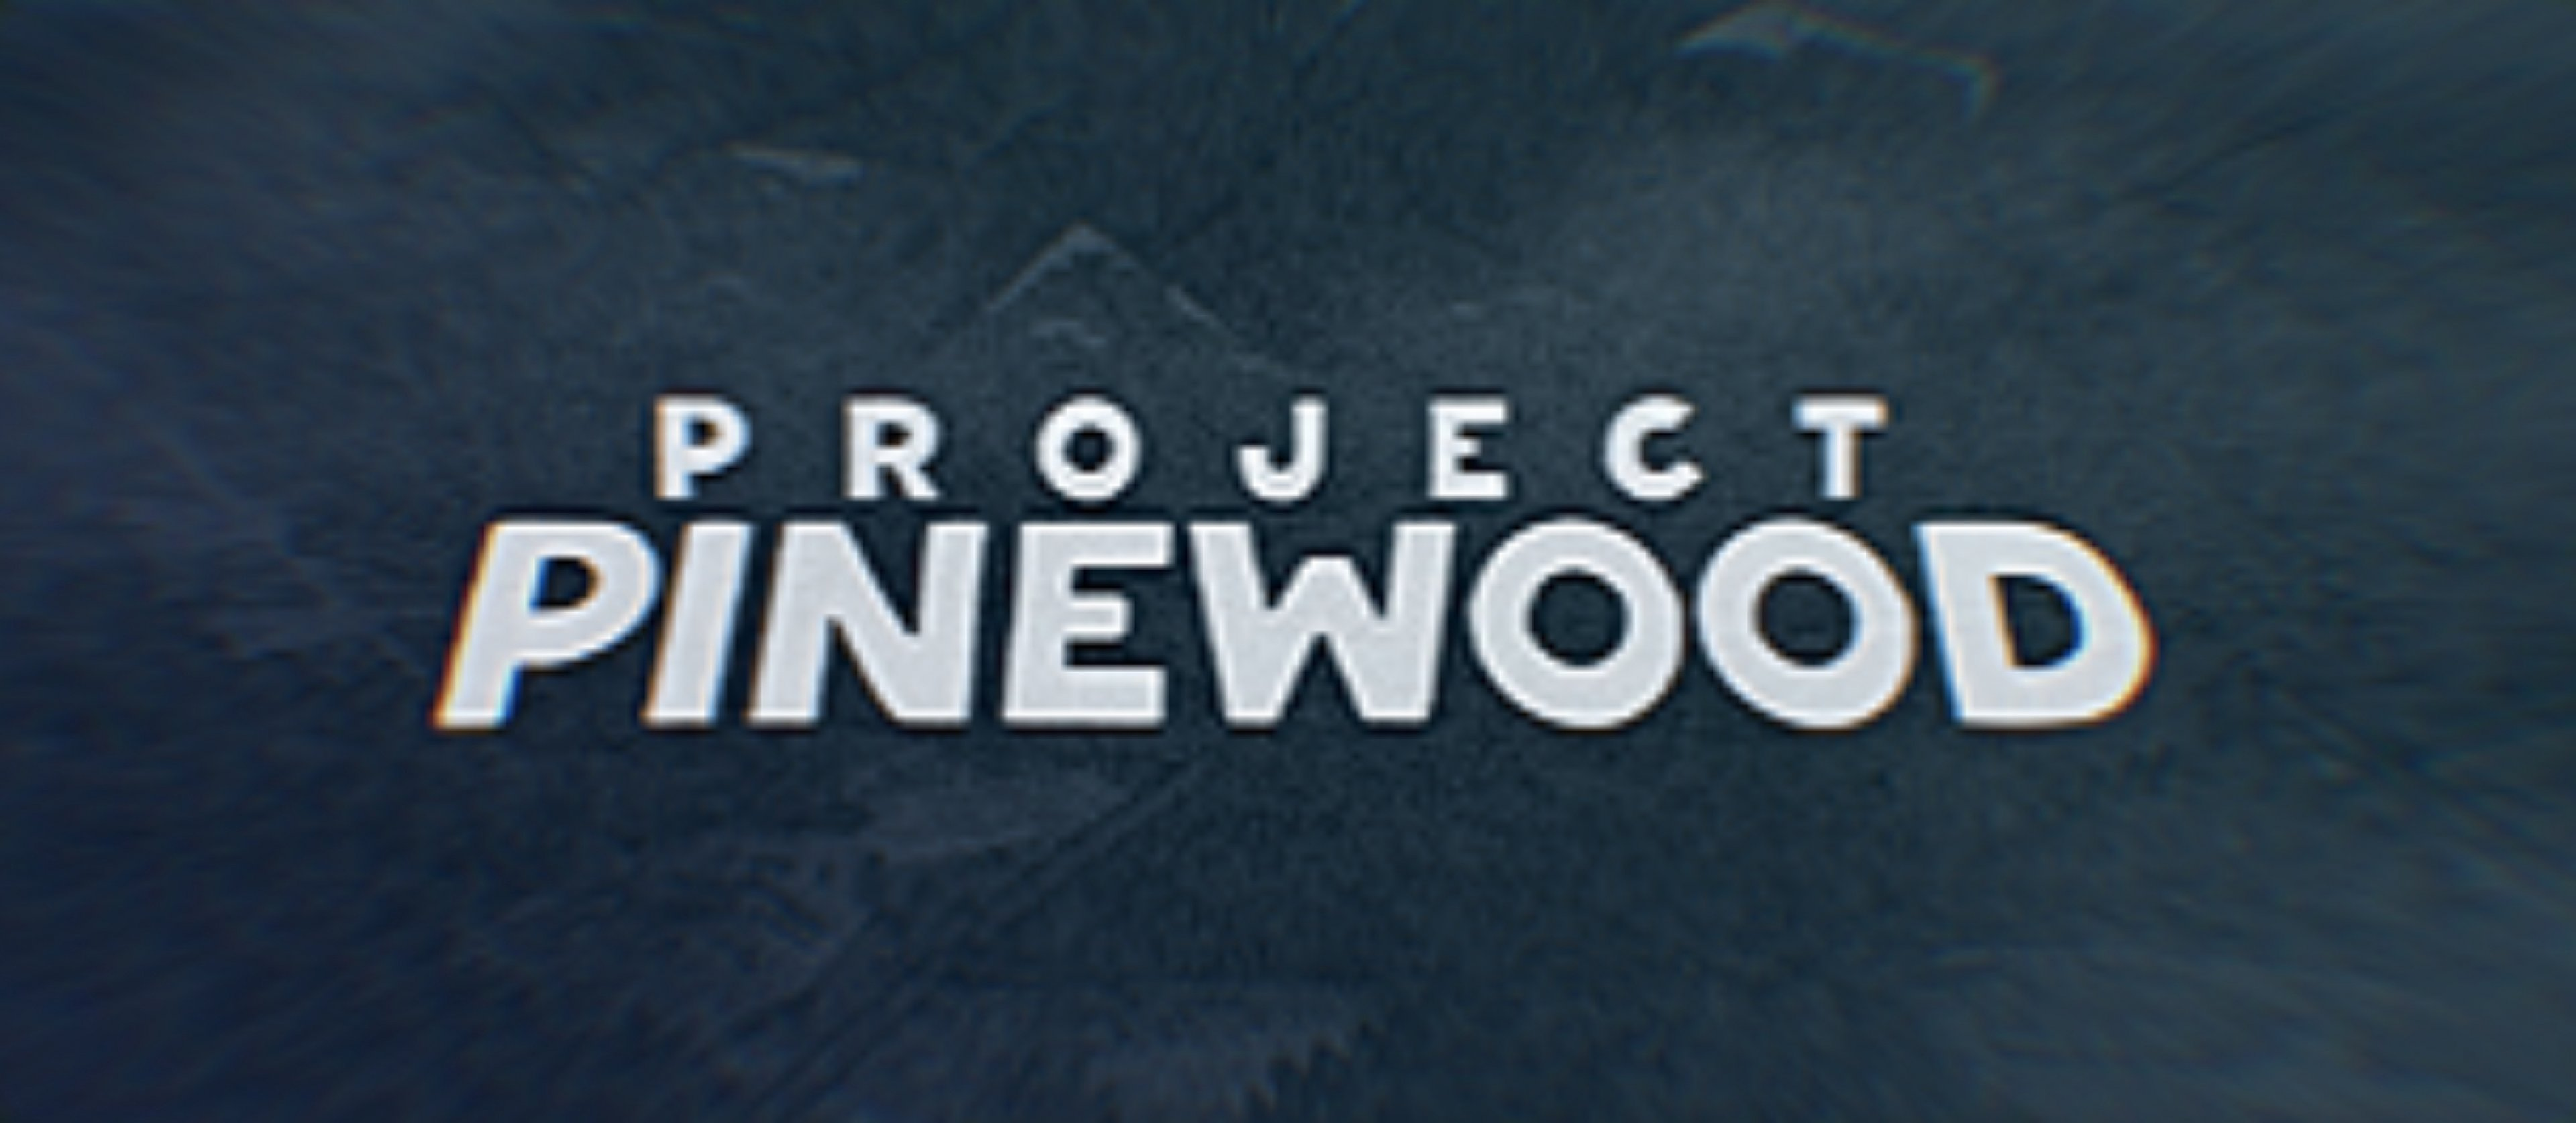 Project Pinewood poster